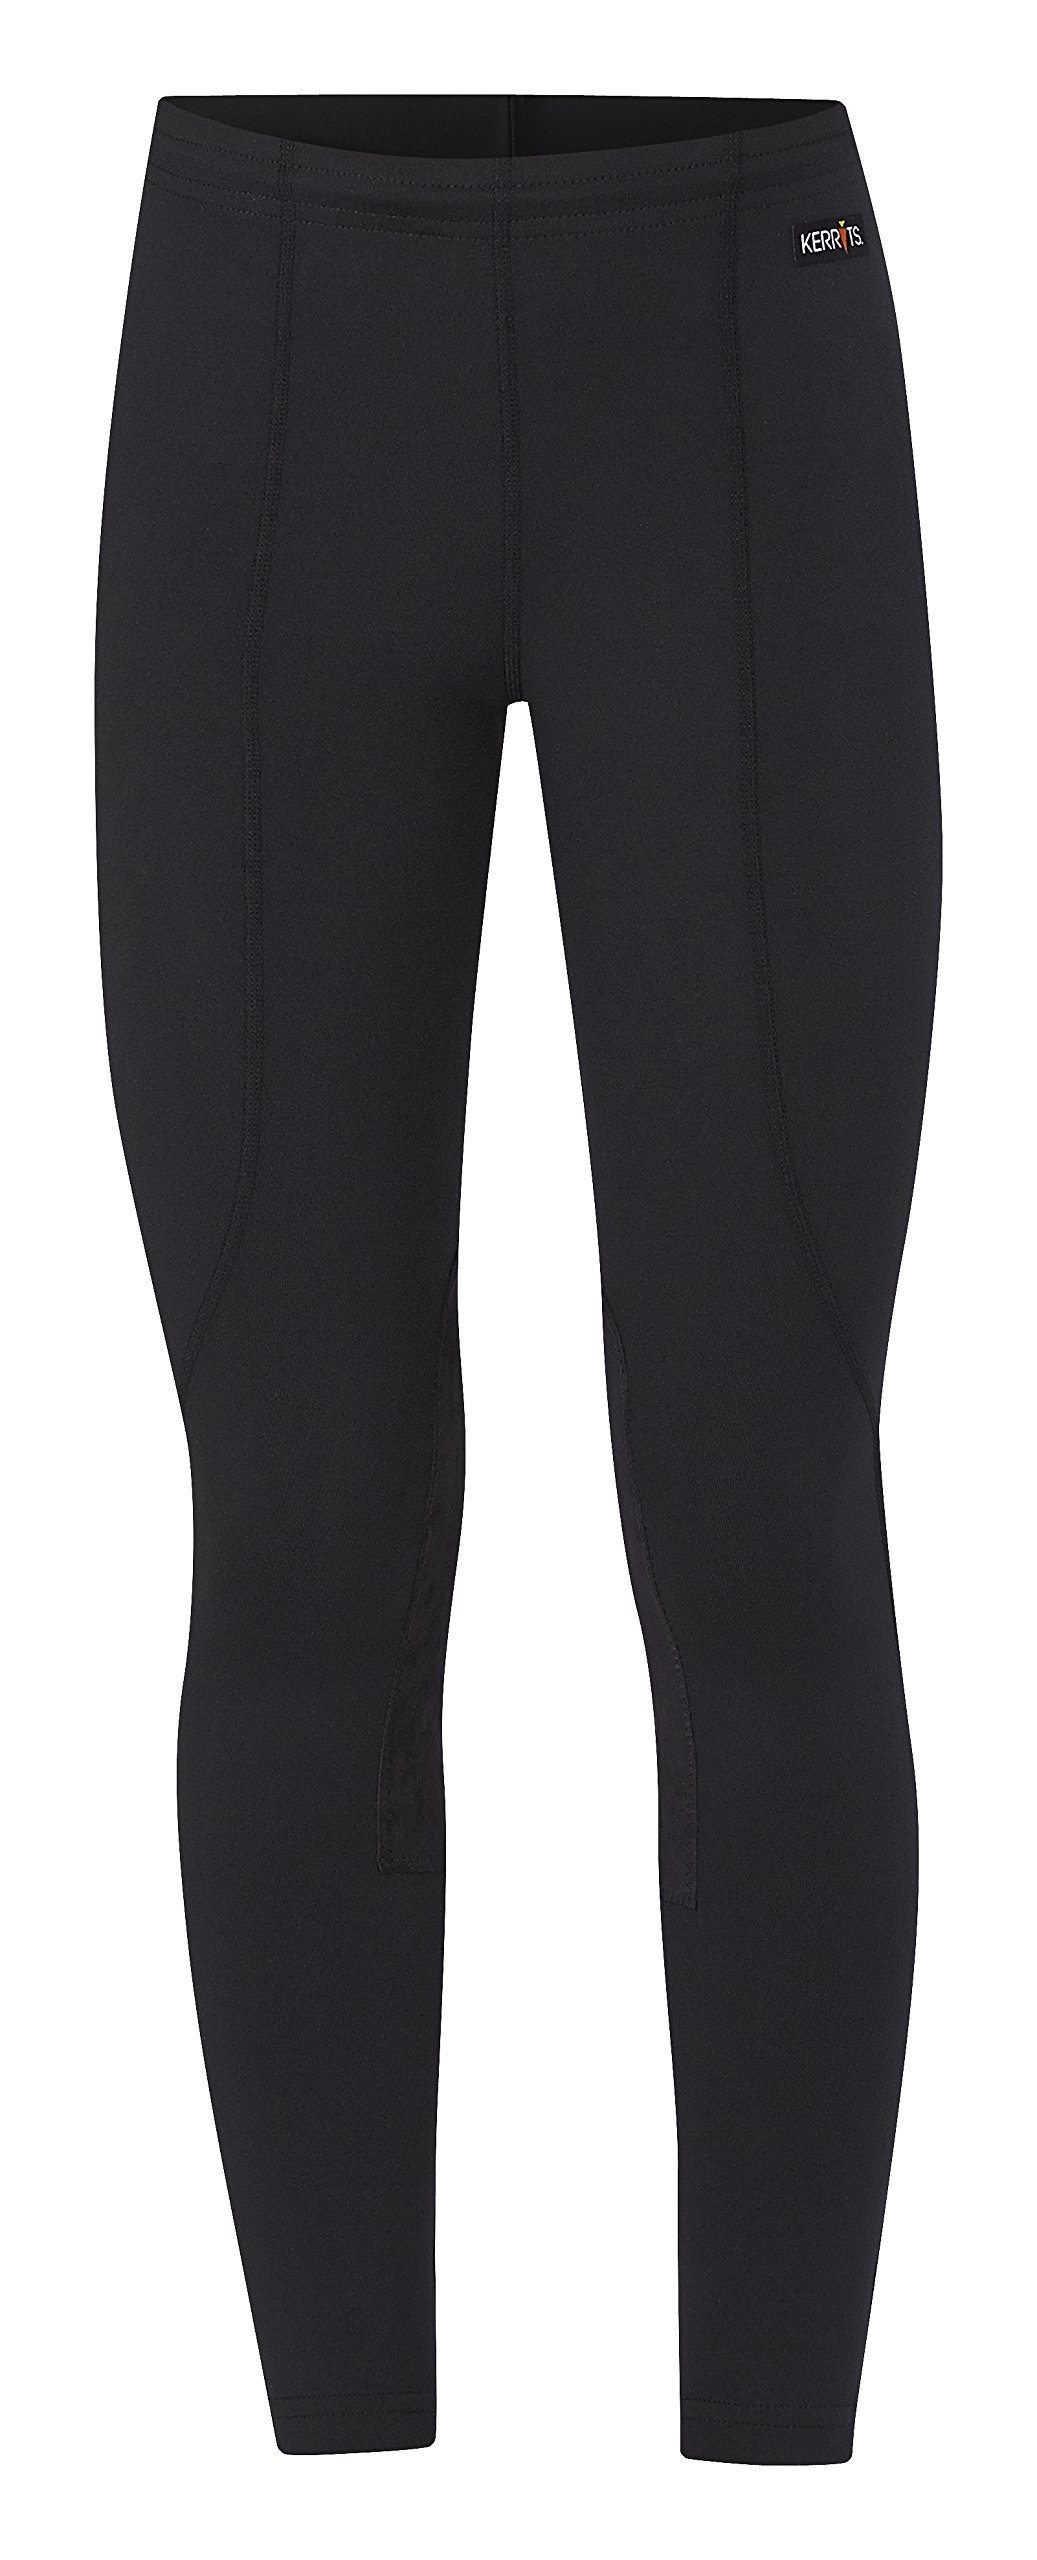 Kerrits Kids Performance Tight Small Black